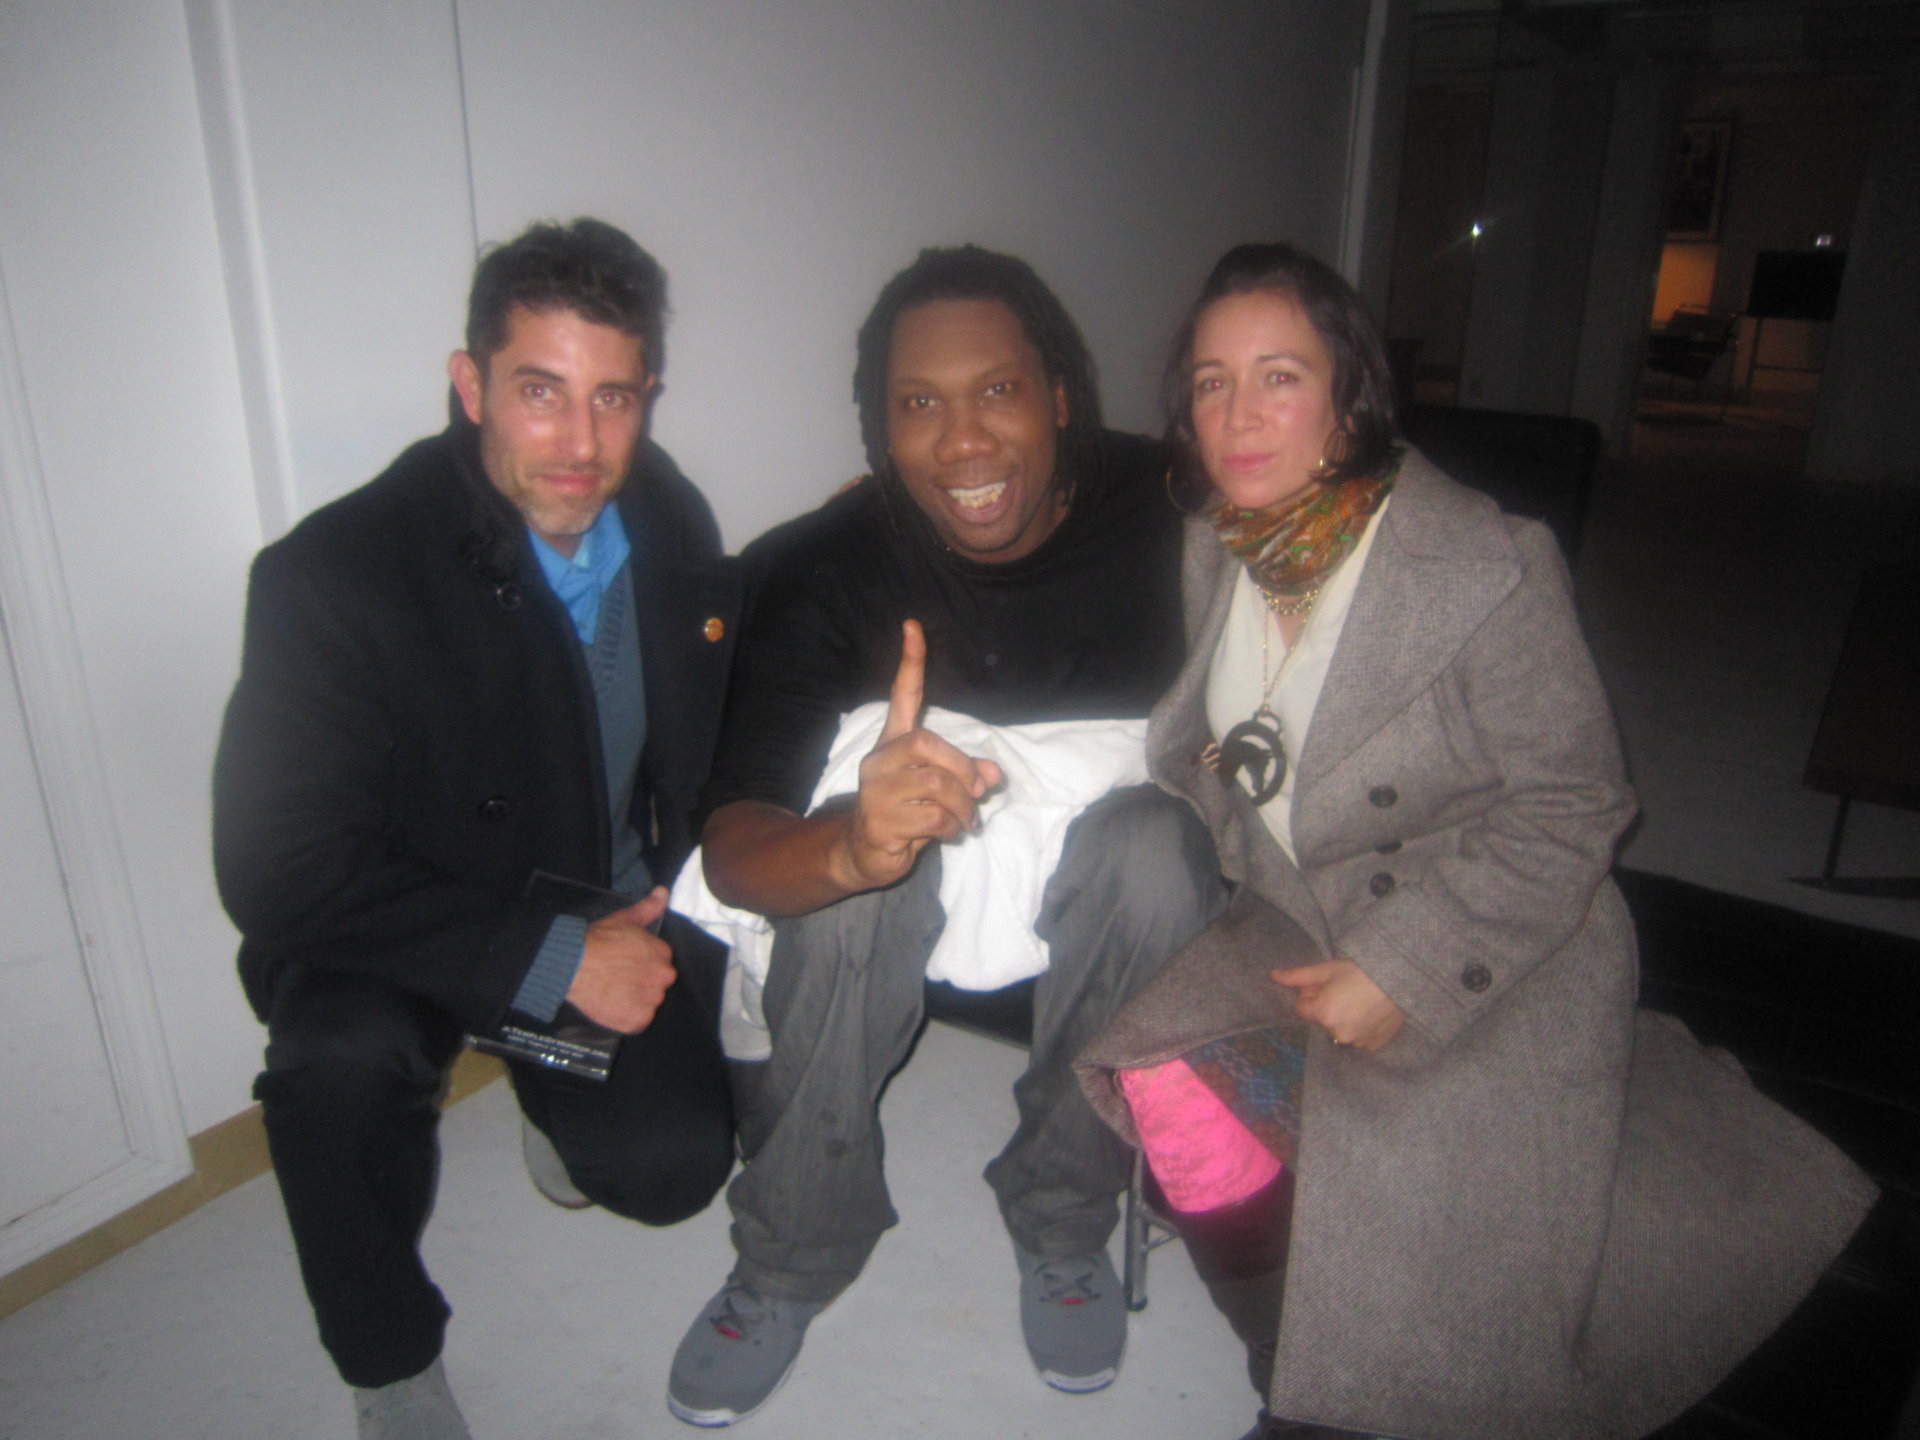 KRS-ONE and nmdz